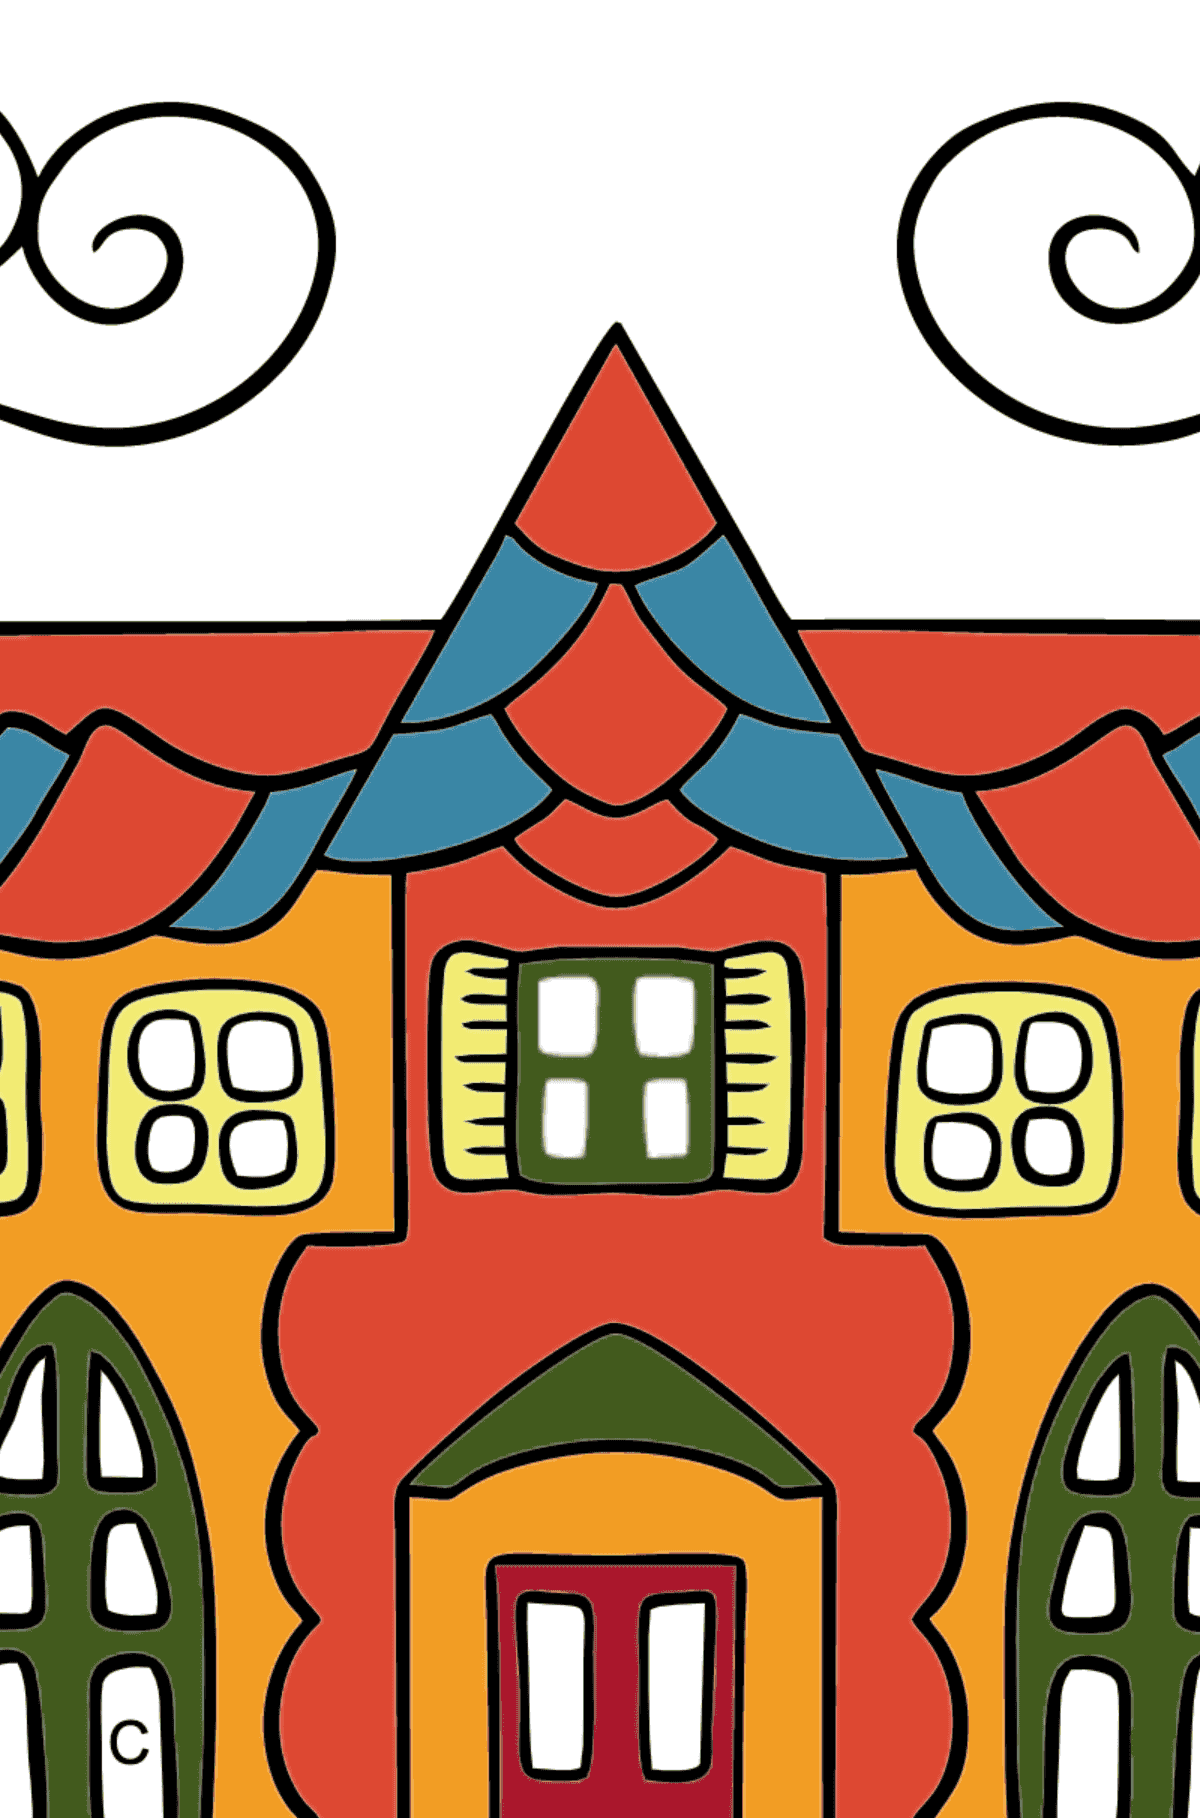 Simple Coloring Page - A House in an Enchanted Kingdom for Children  - Color by Letters